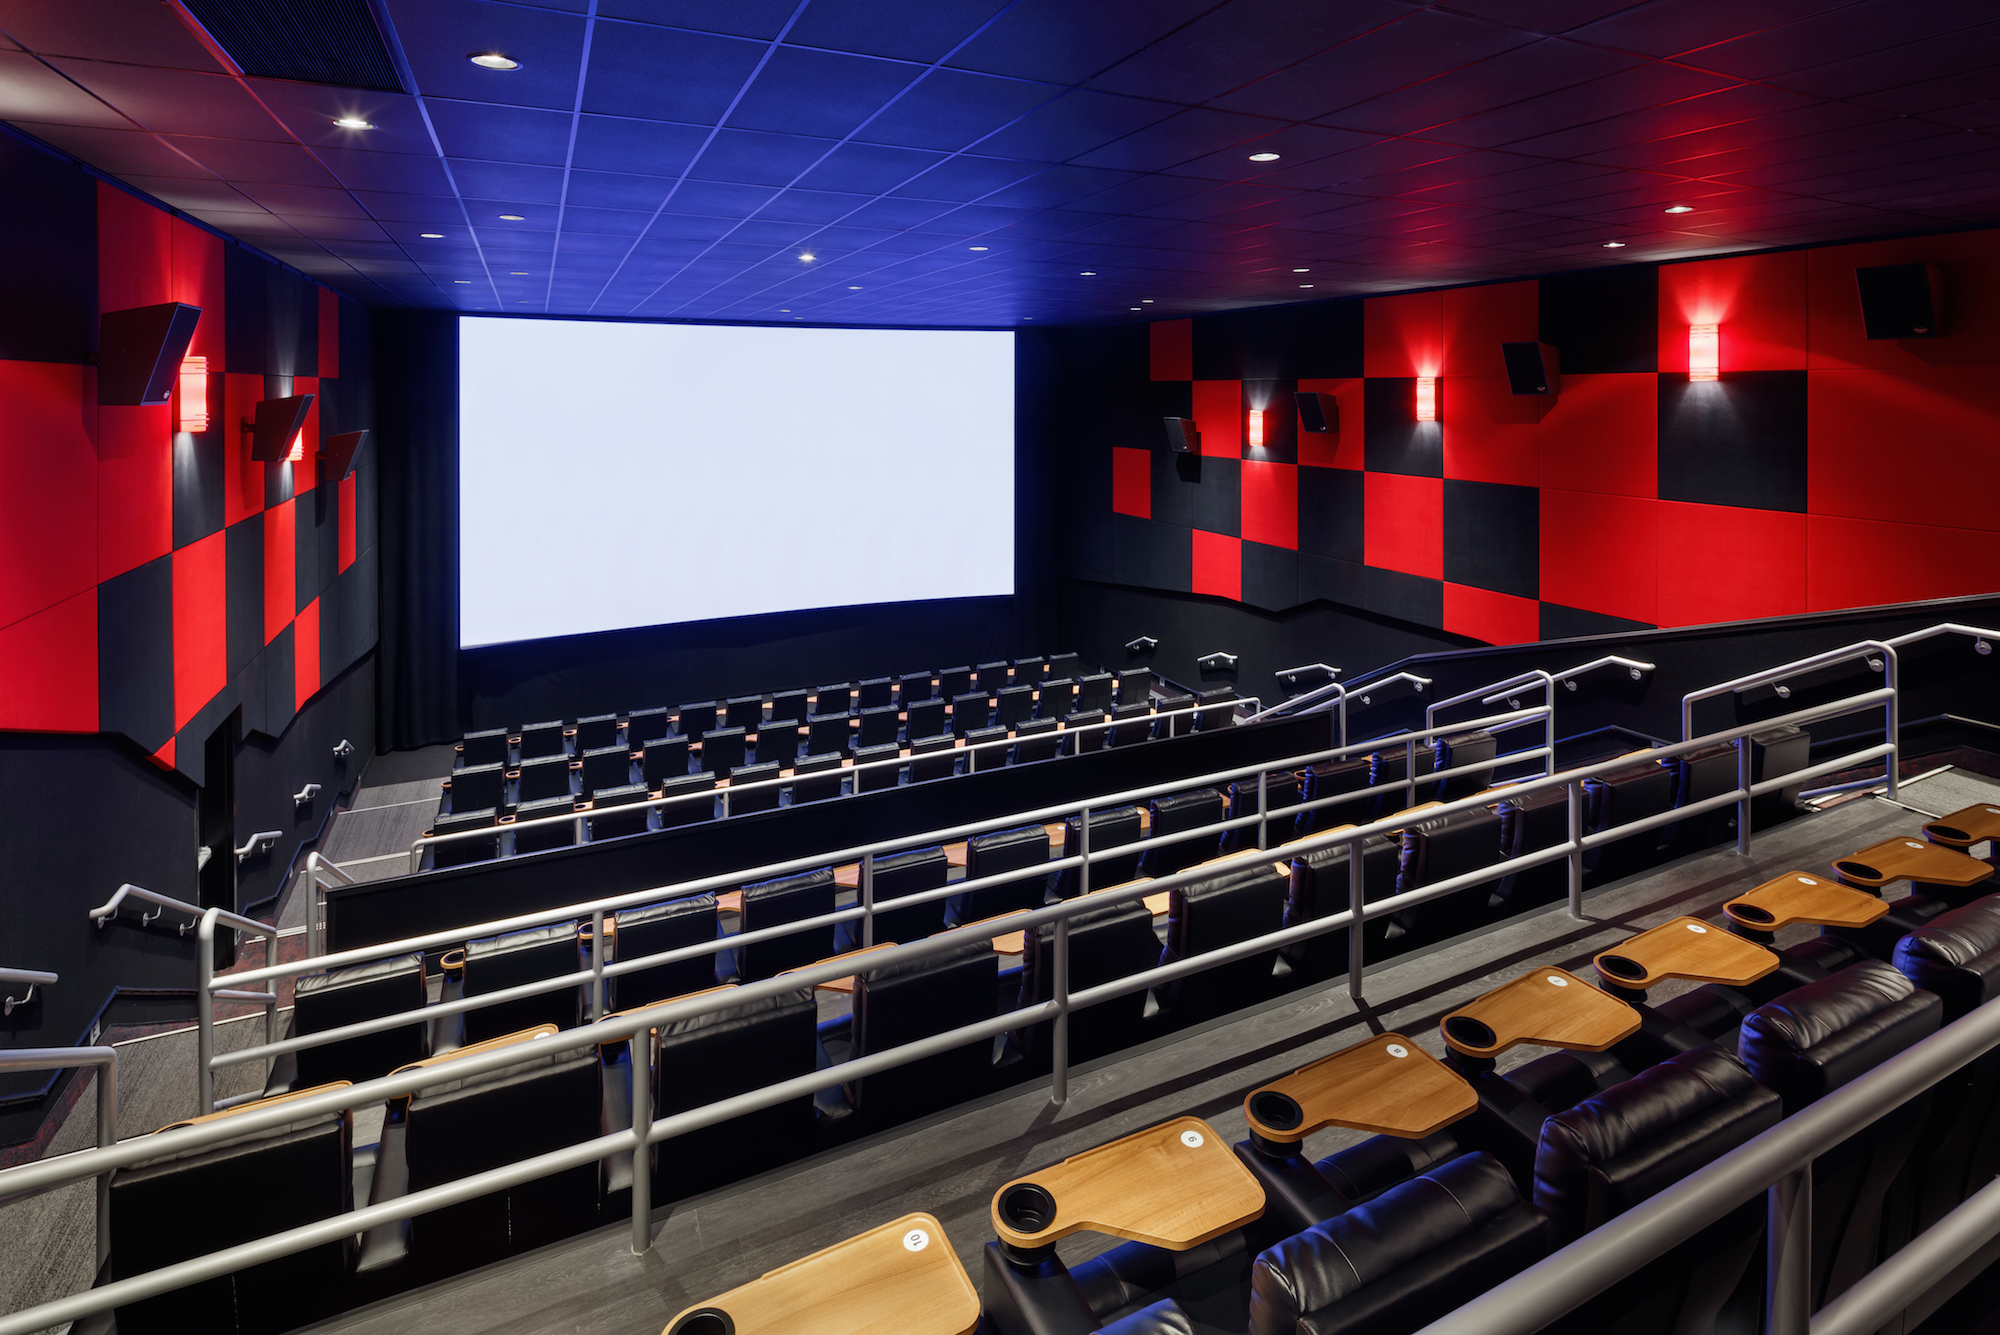 14-screen Regal theater opens at Essex Crossing on the Lower East